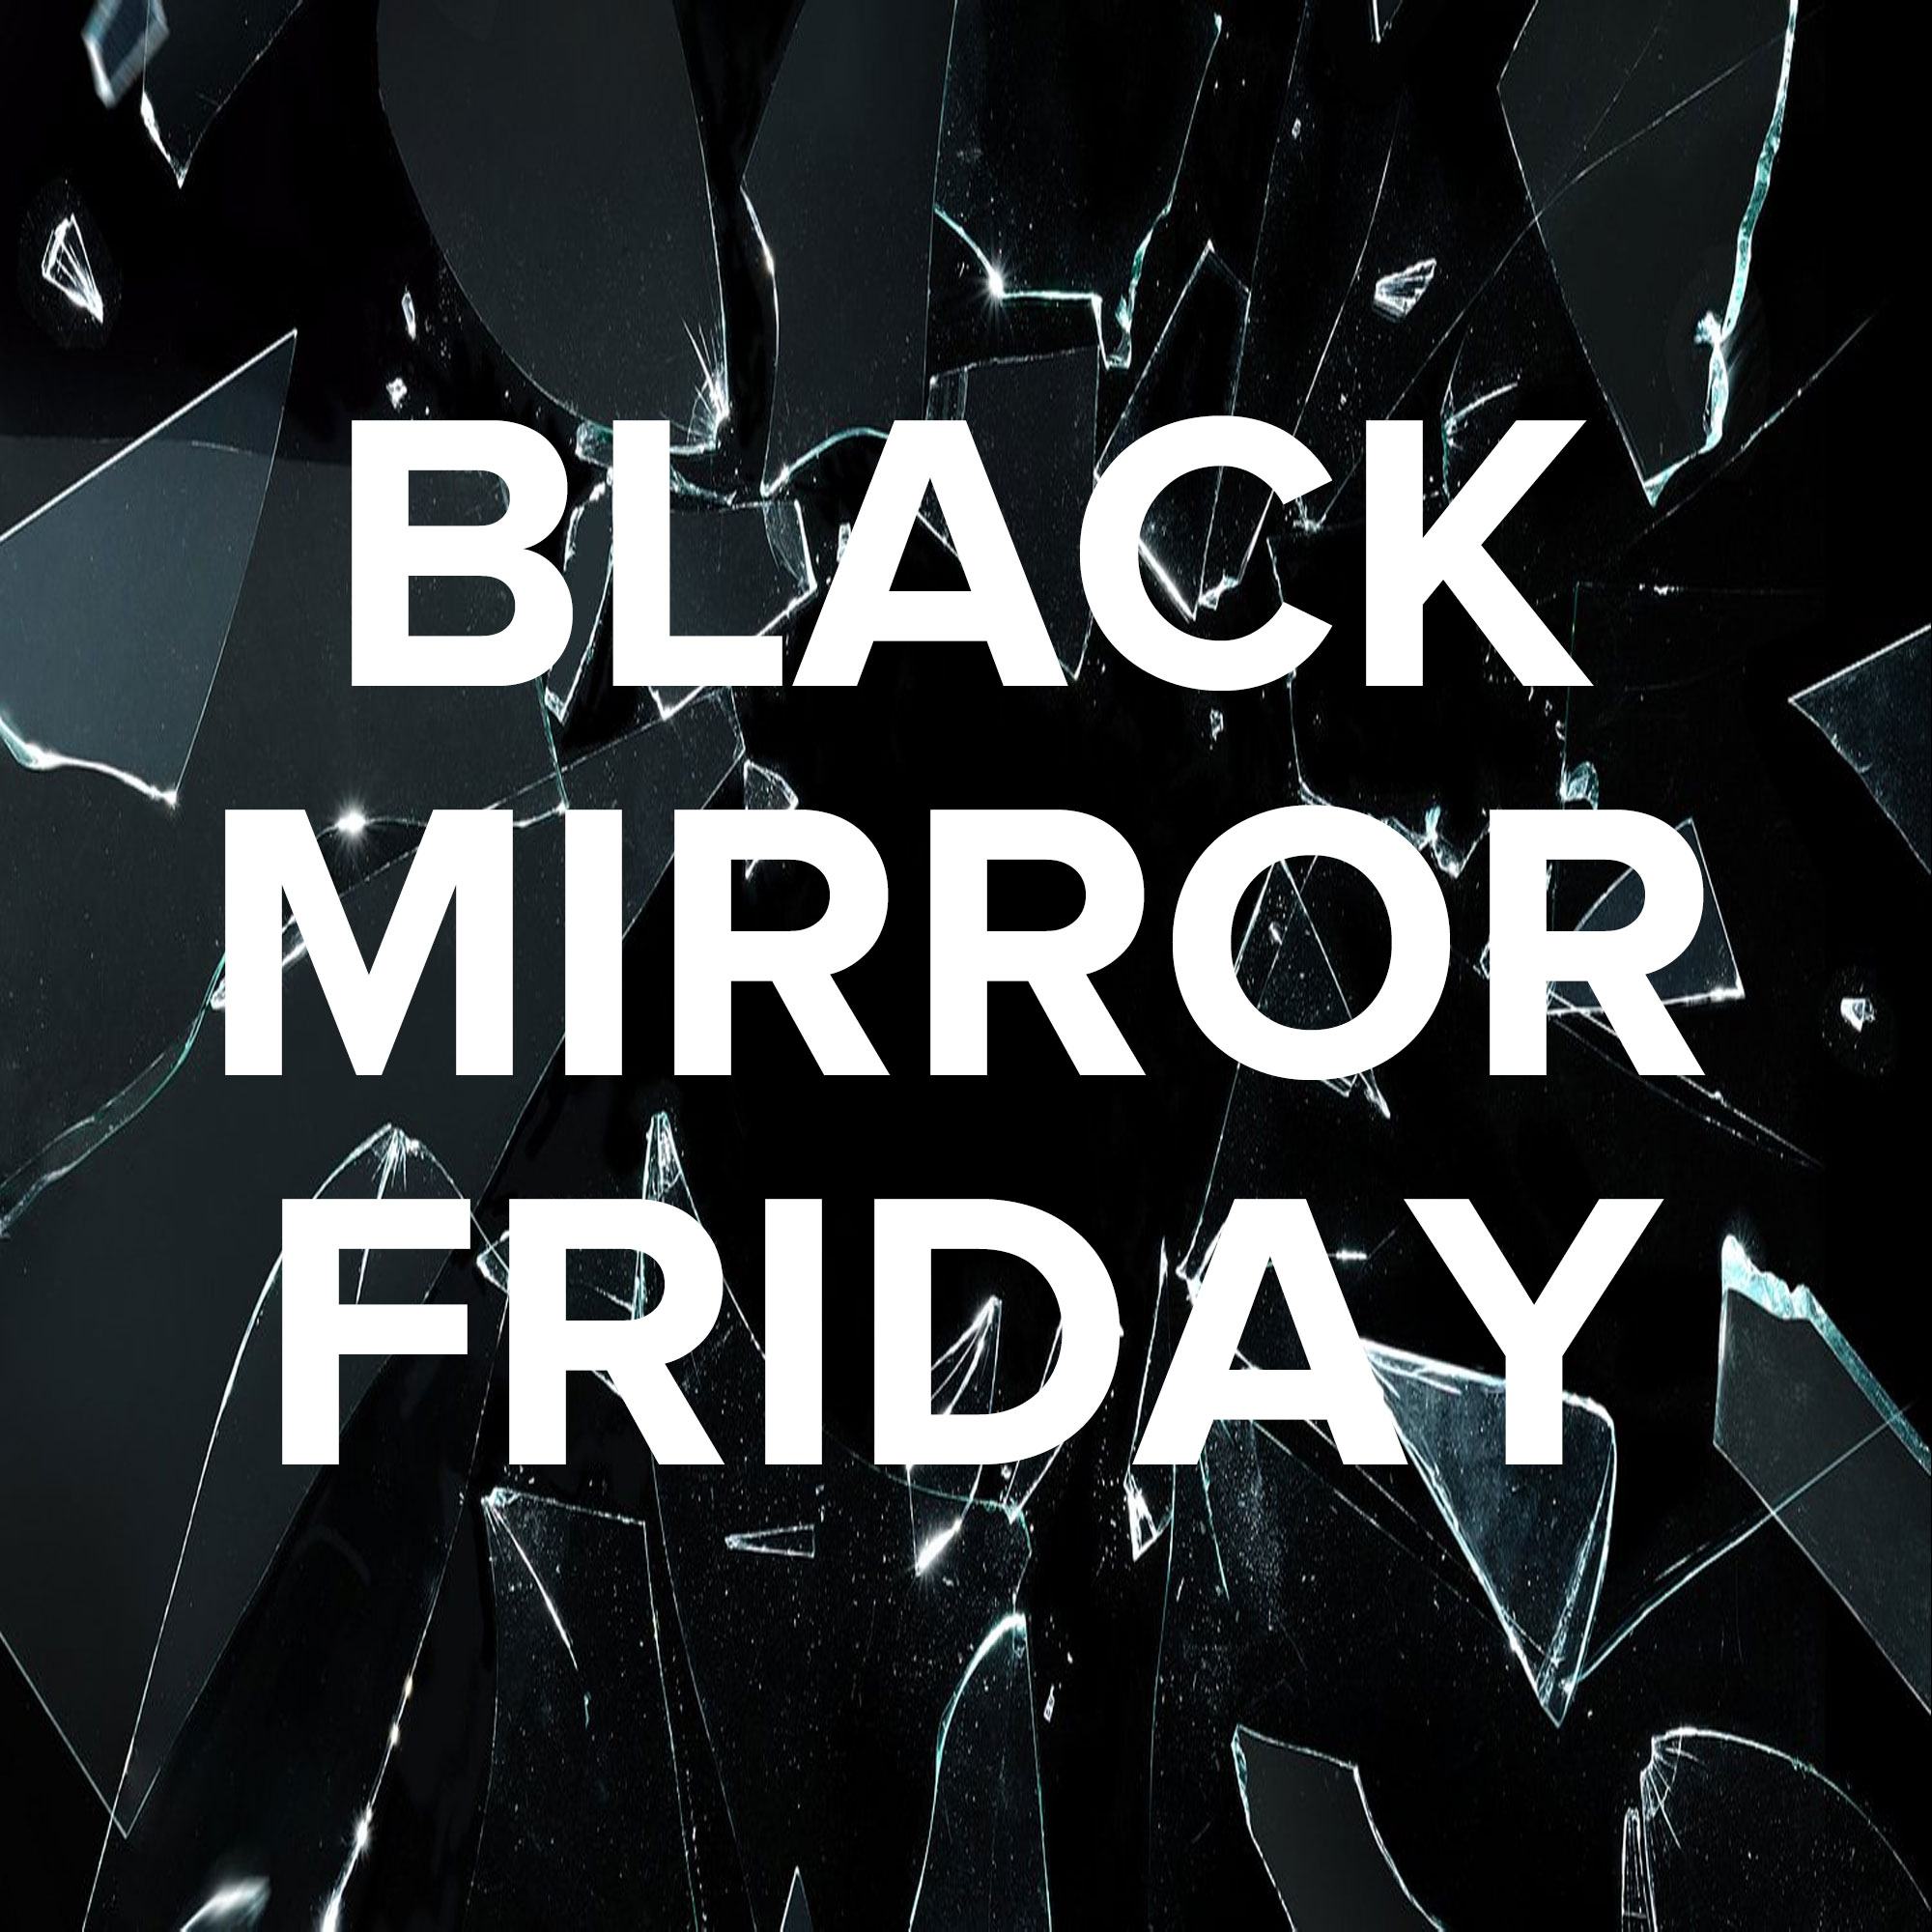 Black Mirror Friday podcast